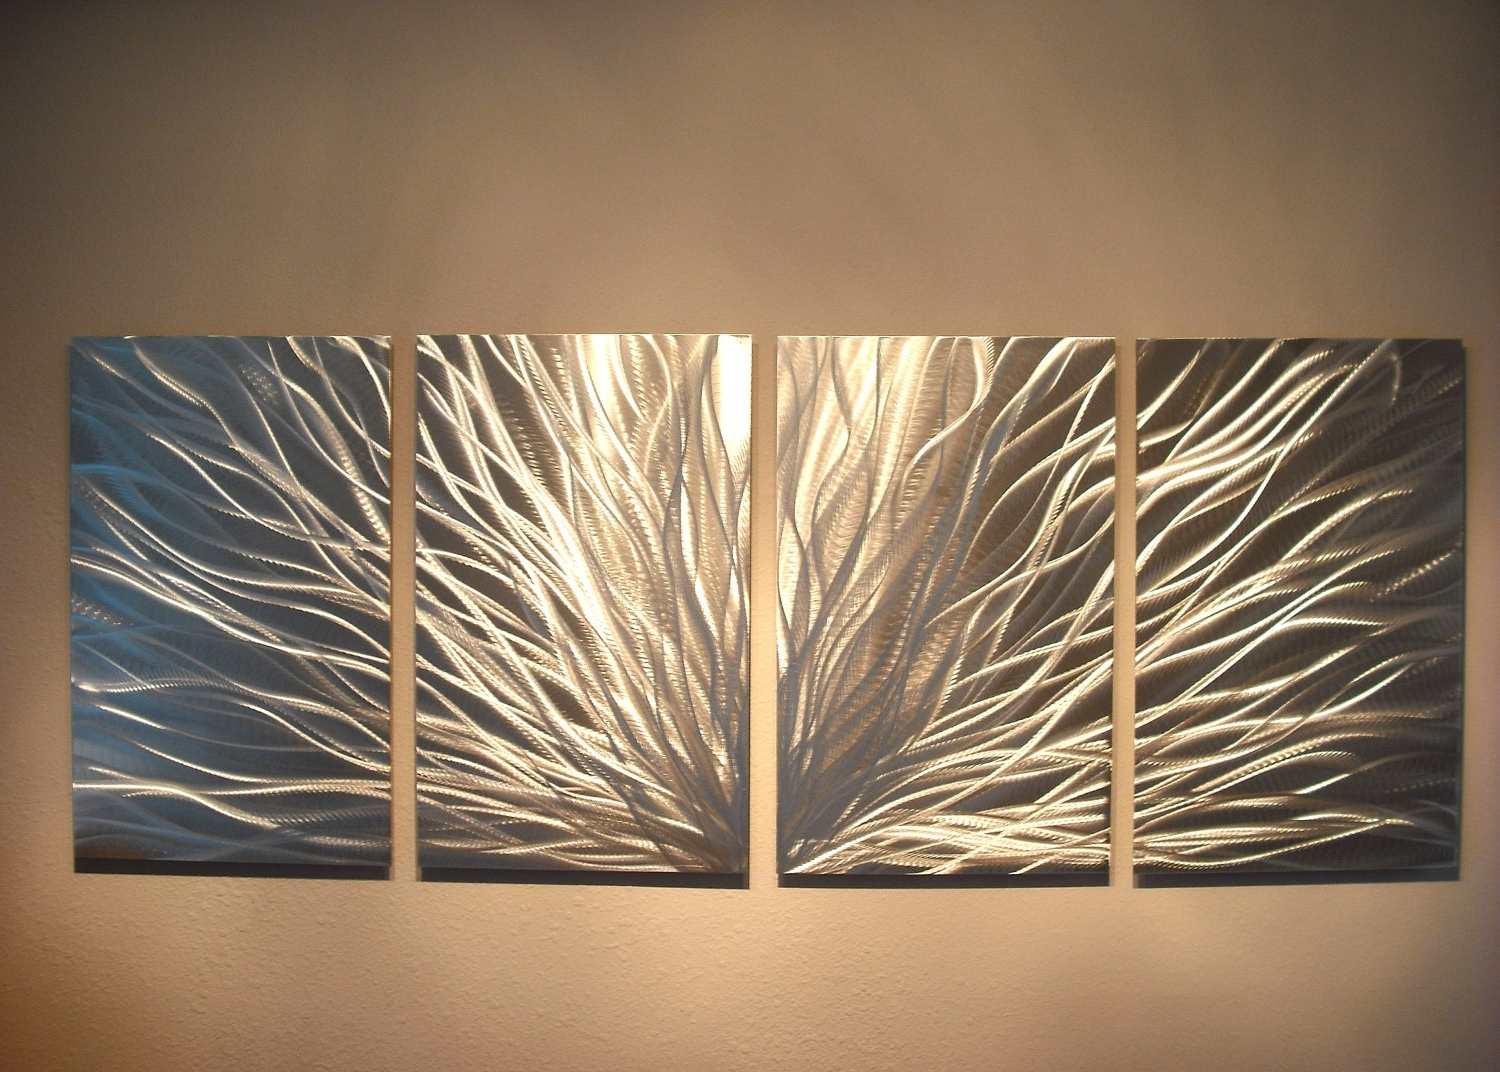 Radiance – Abstract Metal Wall Art Contemporary Modern Decor Intended For Fashionable Contemporary Wall Art (View 11 of 15)